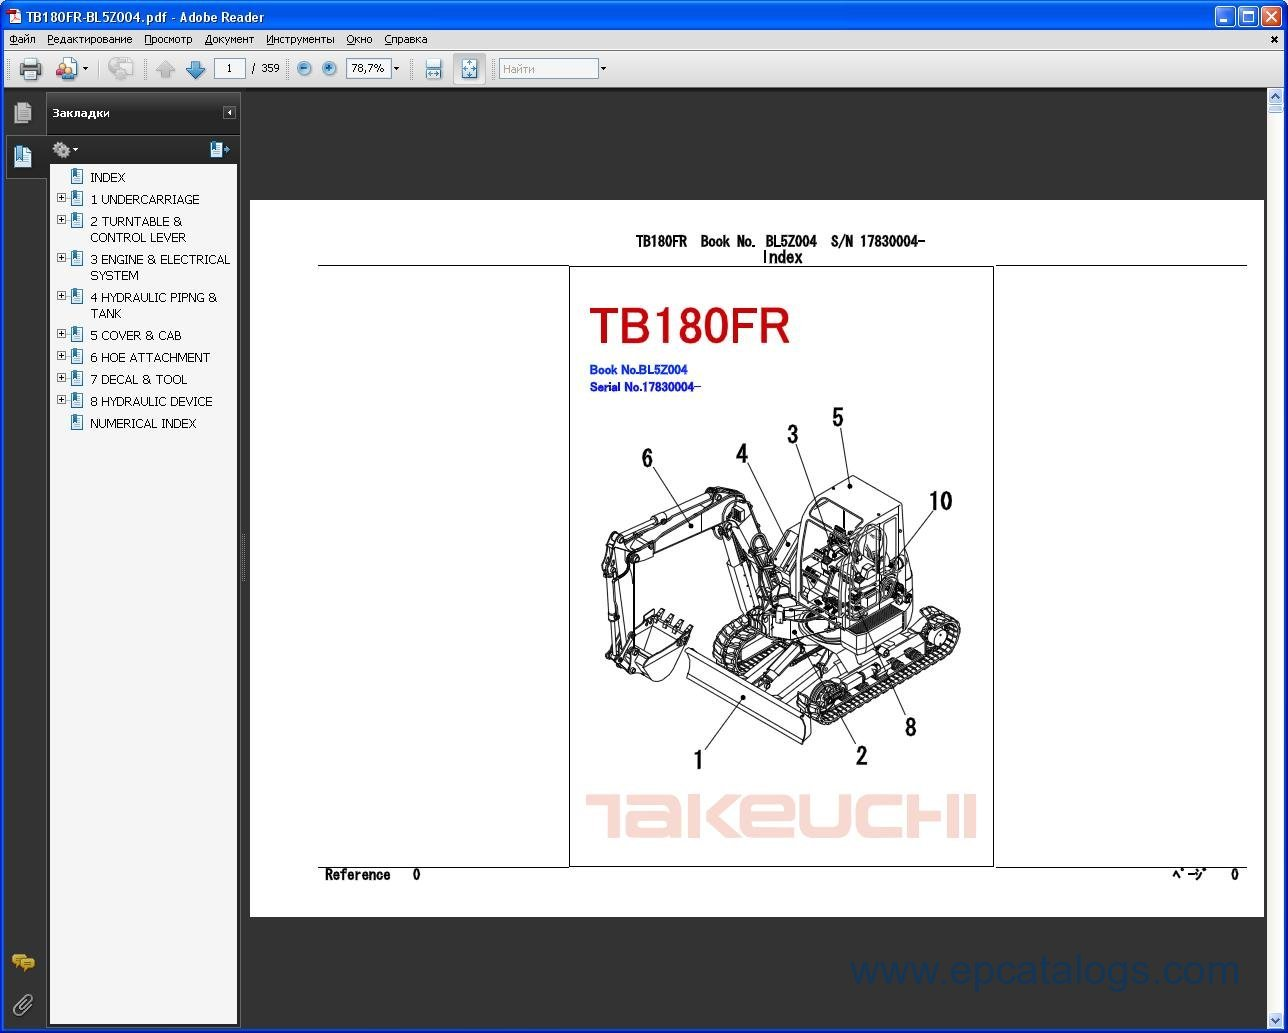 Takeuchi Tl130 Wiring Diagram 29 Images Bobcat Skid Steer S300 Tackeuchi Spare Parts Catalog Heavy Technics Repair At Cita